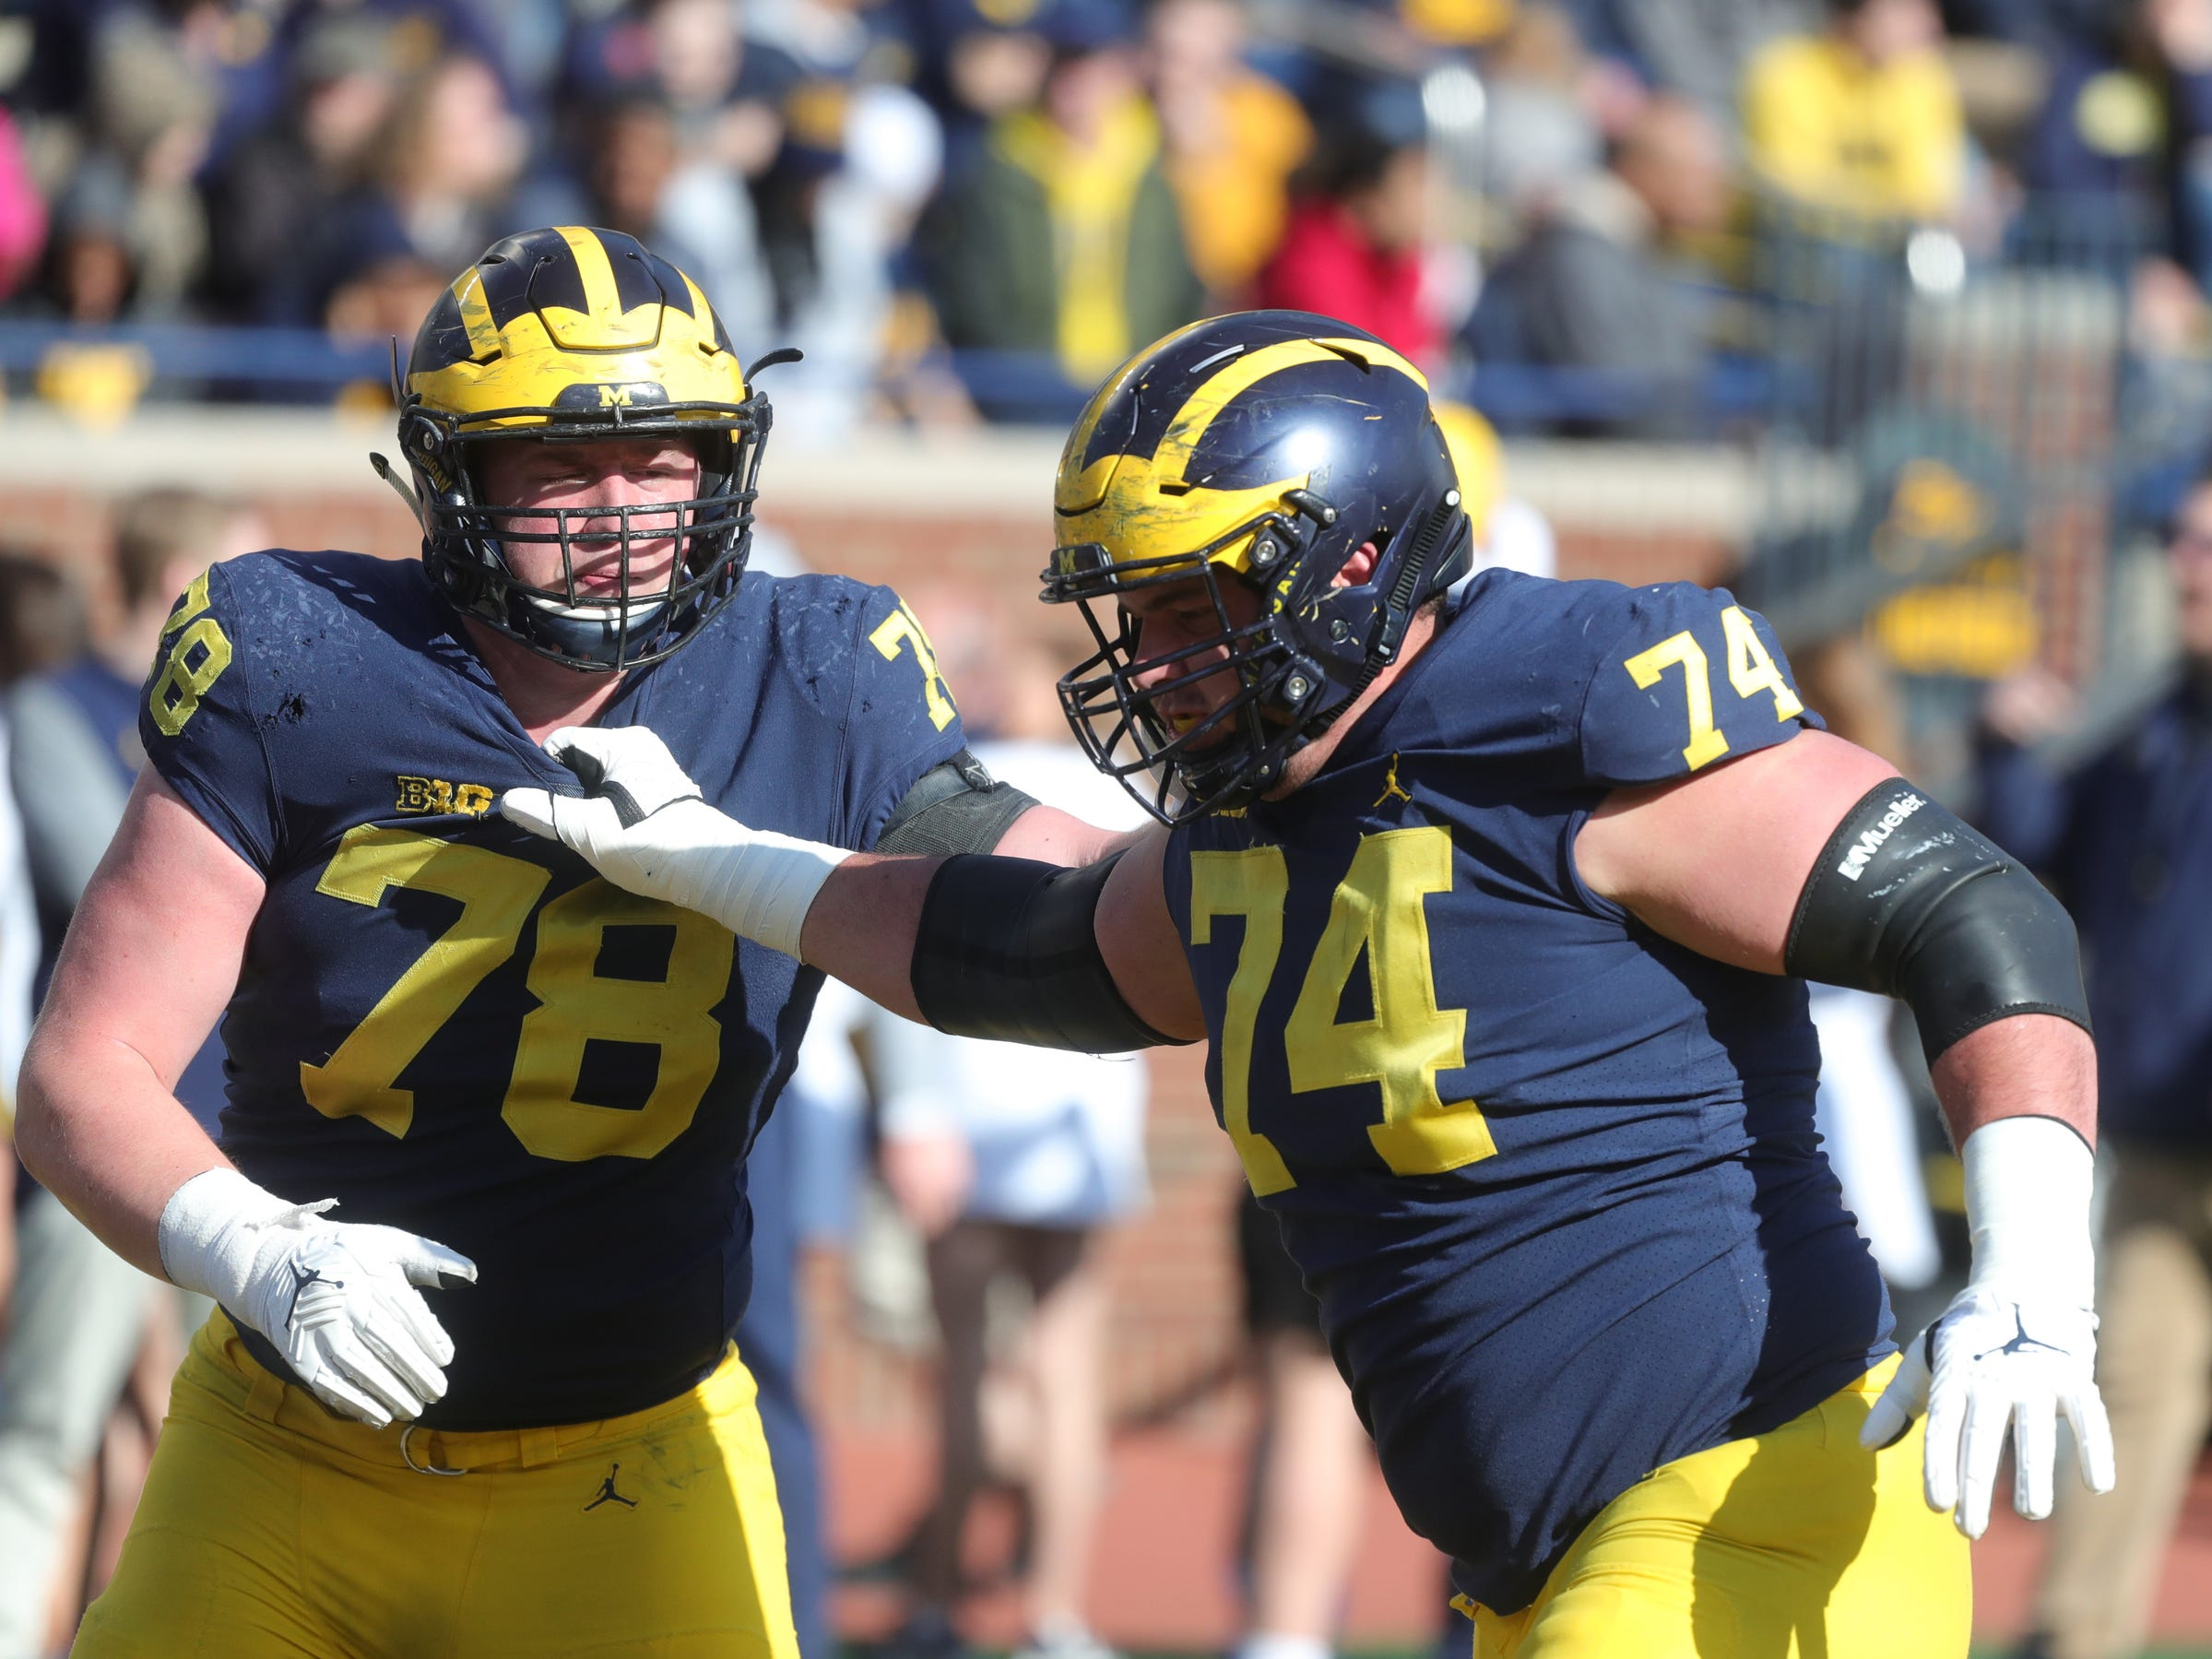 Michigan's Ben Bredeson, right, and Griffin Korican at the spring game Saturday, April 13, 2019 at Michigan Stadium in Ann Arbor.